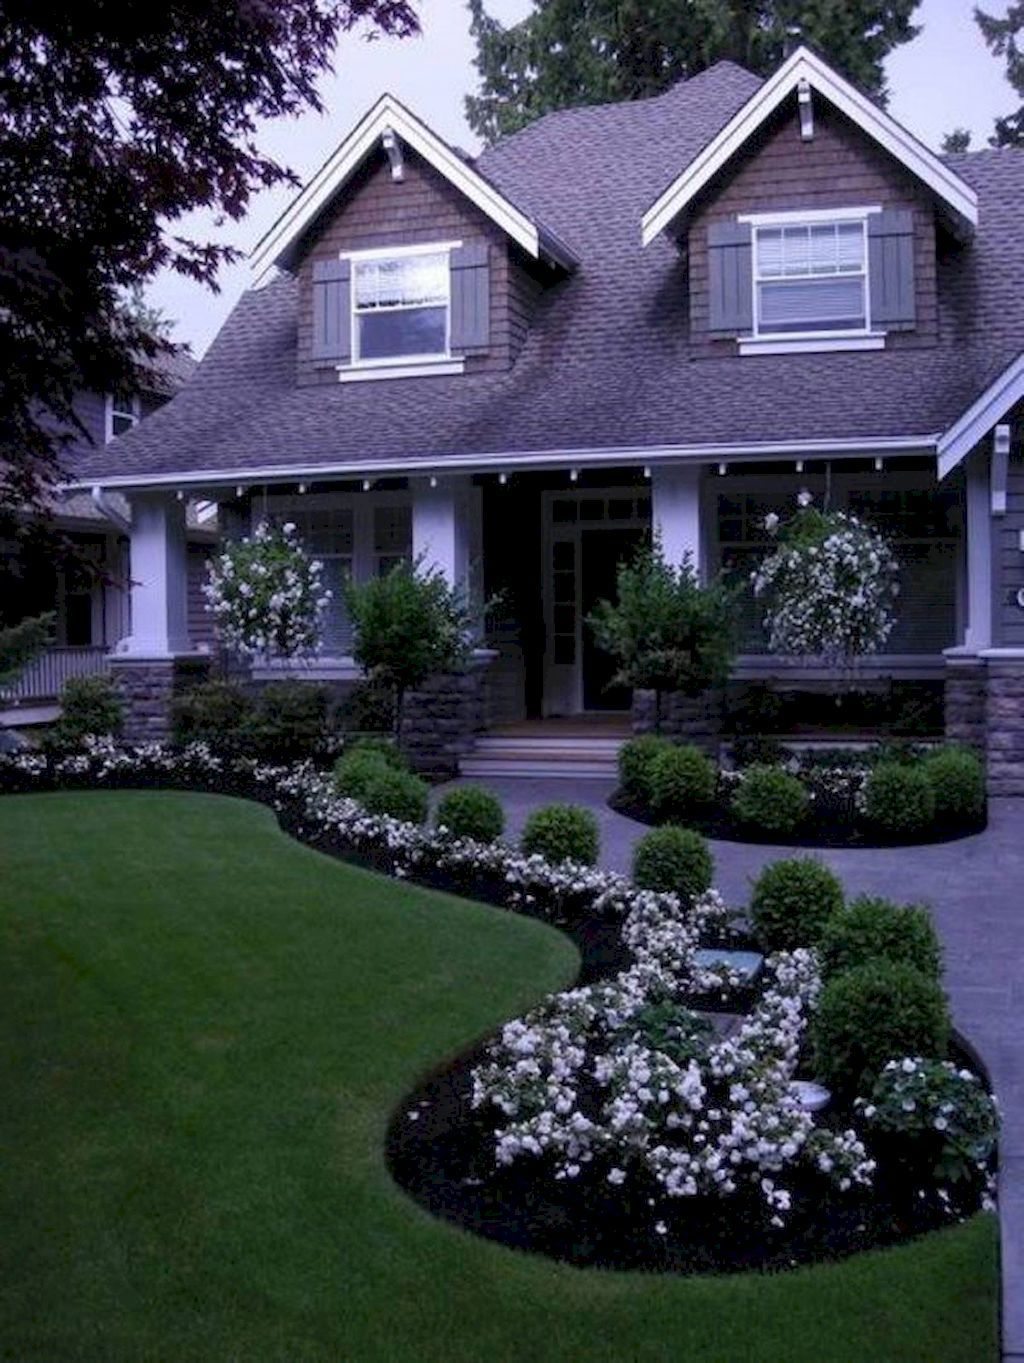 40 beautiful front yard landscaping ideas yard for Front lawn landscaping